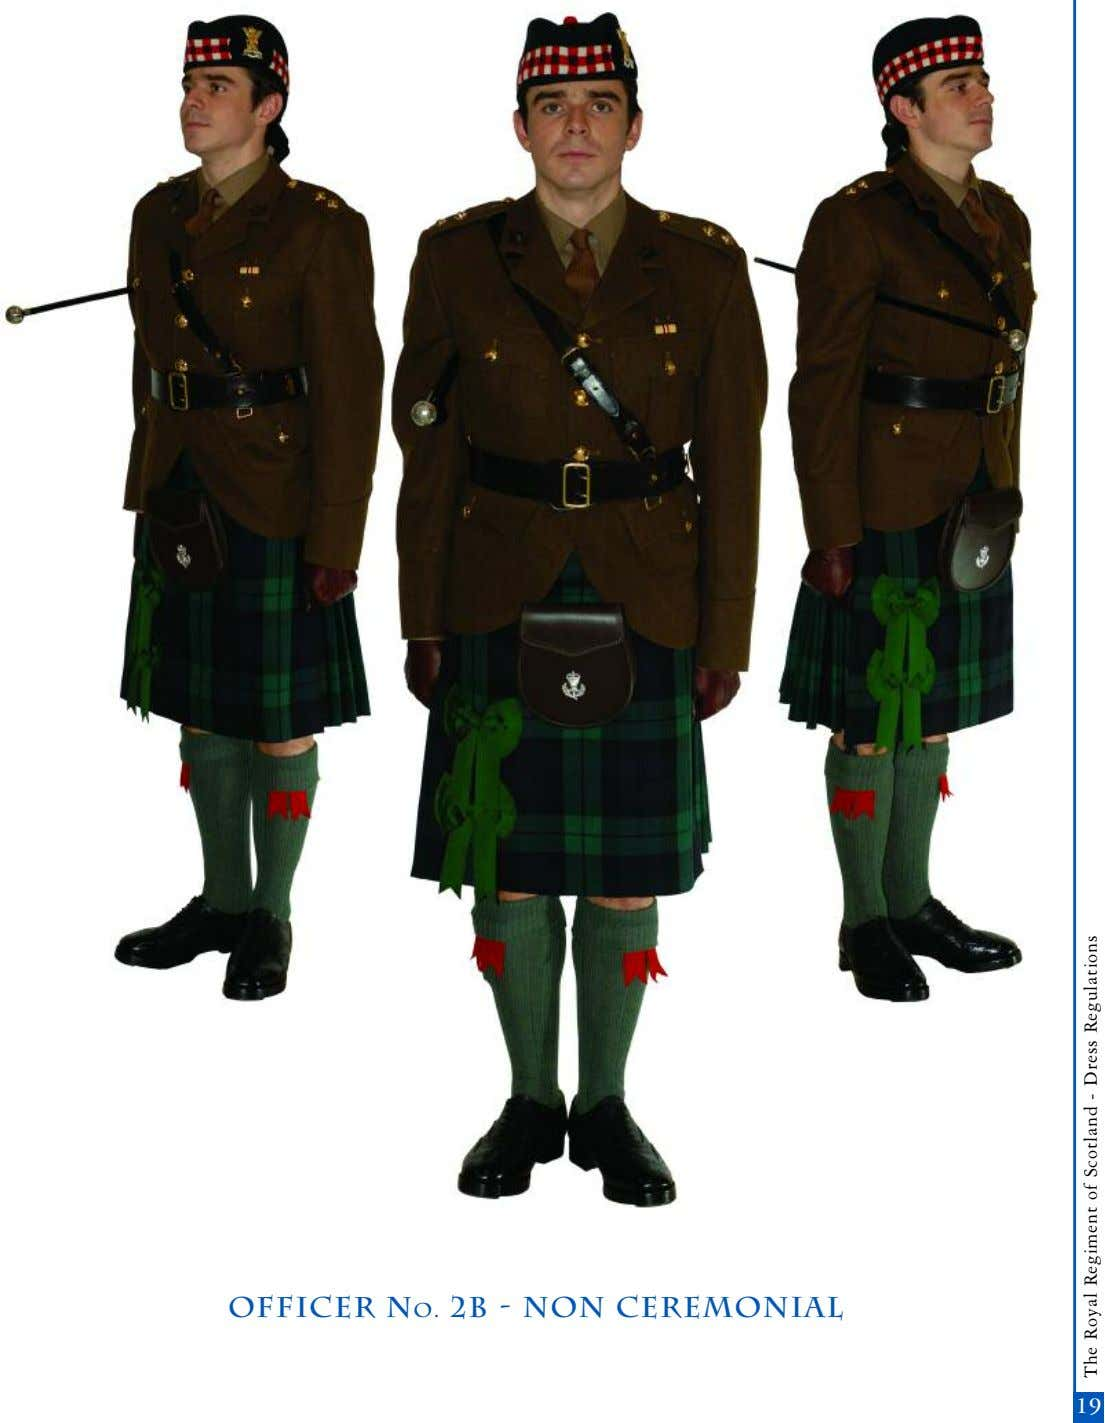 officer No. 2b - non Ceremonial 17 19 The Royal Regiment of Scotland - Dress